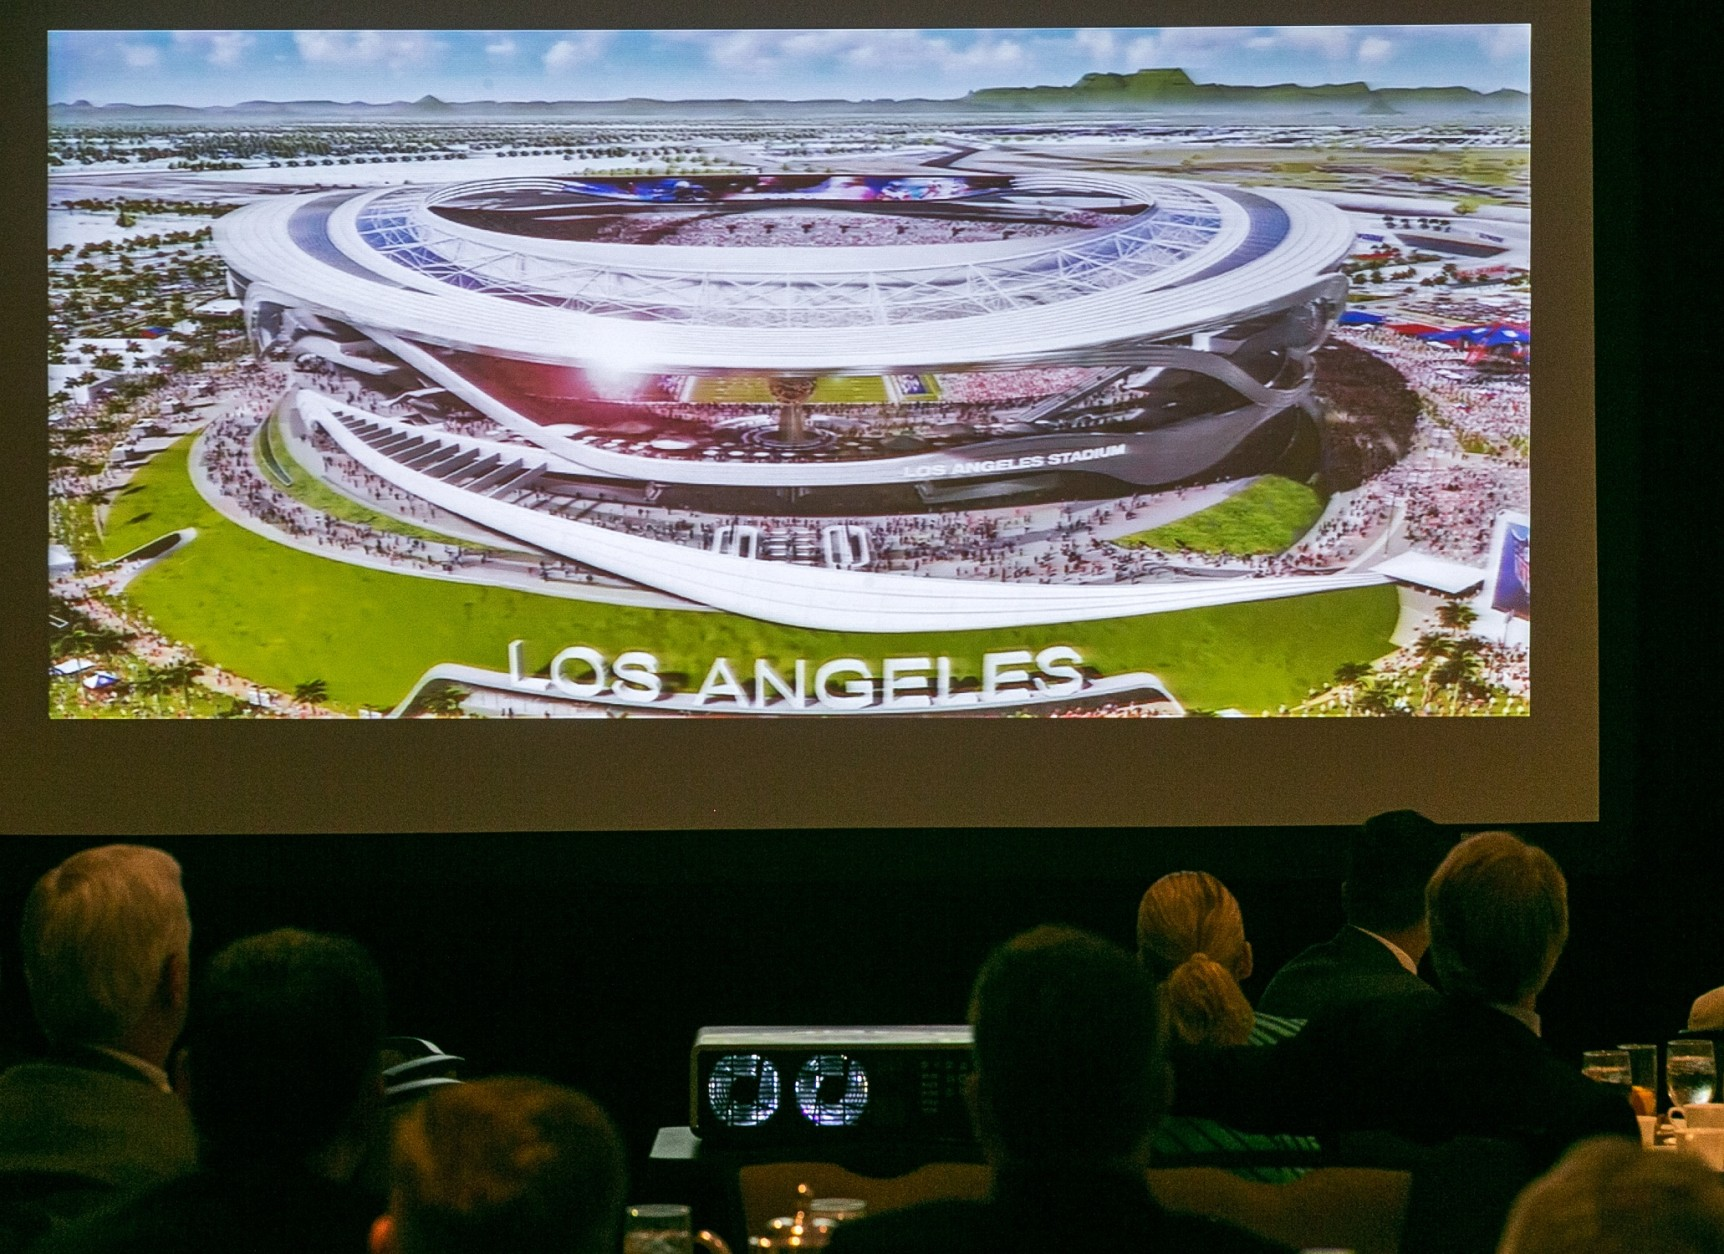 An architectural rendering for a new NFL stadium is projected during a lunch sponsored by the Los Angeles Sports Council downtown Los Angeles Monday, Aug. 17, 2015. The $1.7-billion new NFL football stadium proposed for Carson by the owners of the San Diego Chargers and Oakland Raiders will be located 15 miles from West Los Angeles, 10 miles from Orange County and 12 miles from downtown. The stadium's capacity will be 65,000 and can be increased to 75,000 for the Super Bowl. (AP Photo/Damian Dovarganes)